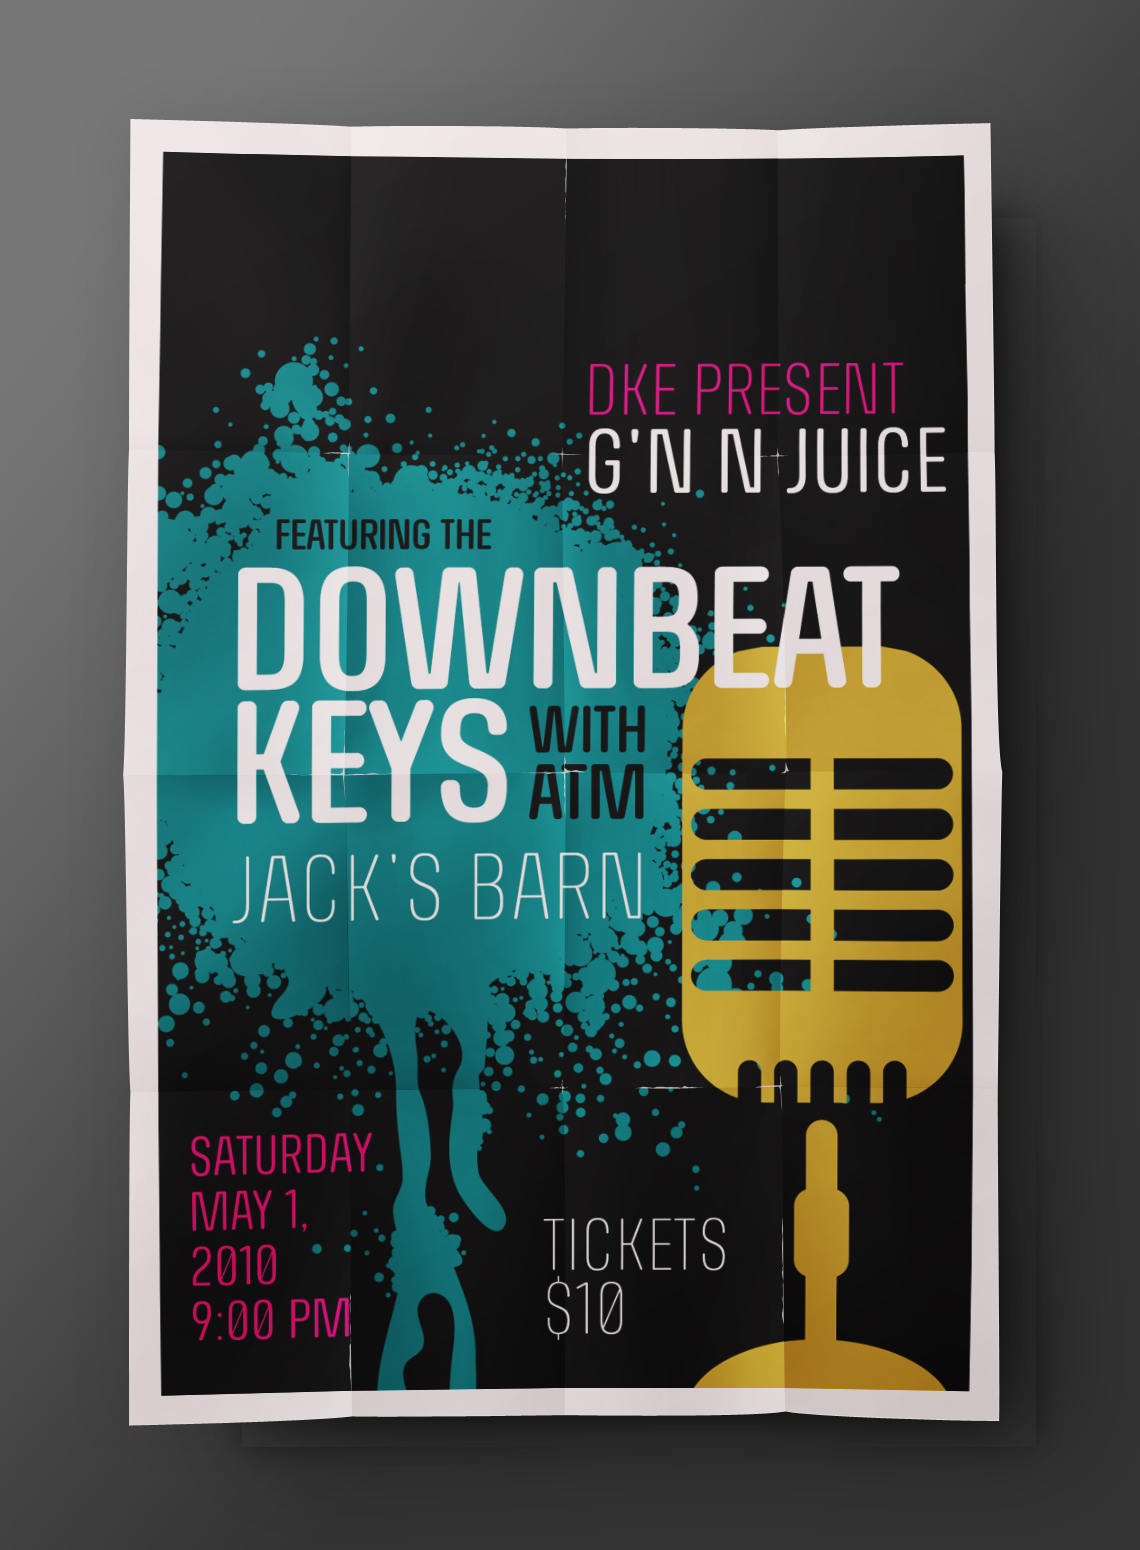 Downbeat Keys Poster Design